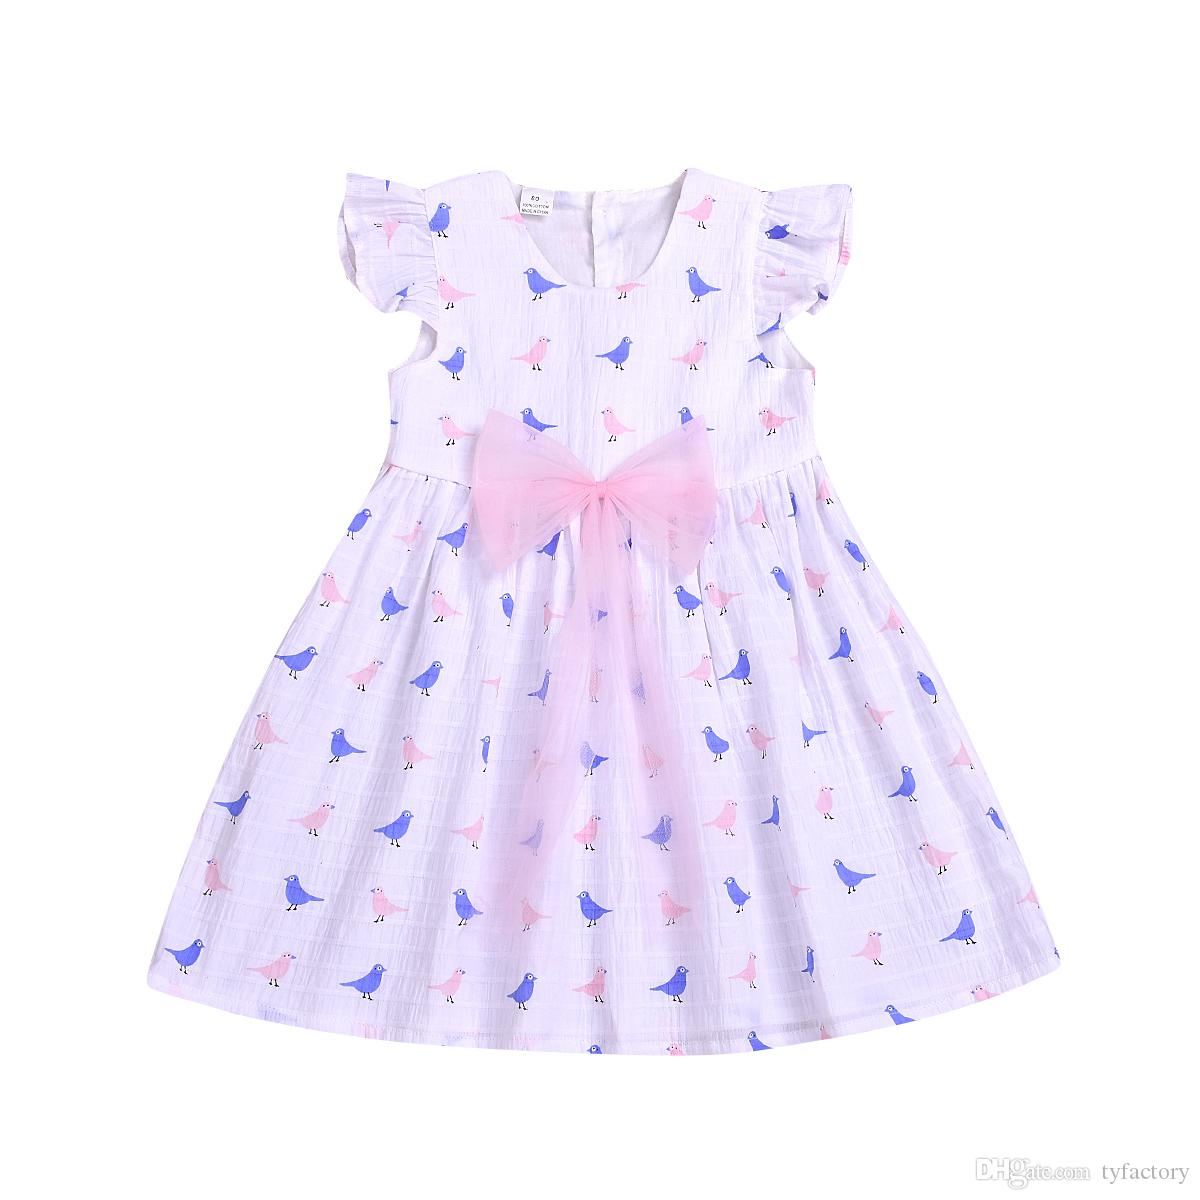 Kids girls Little bird princess dresses clothes white color baby dress boutique girl clothing clothes